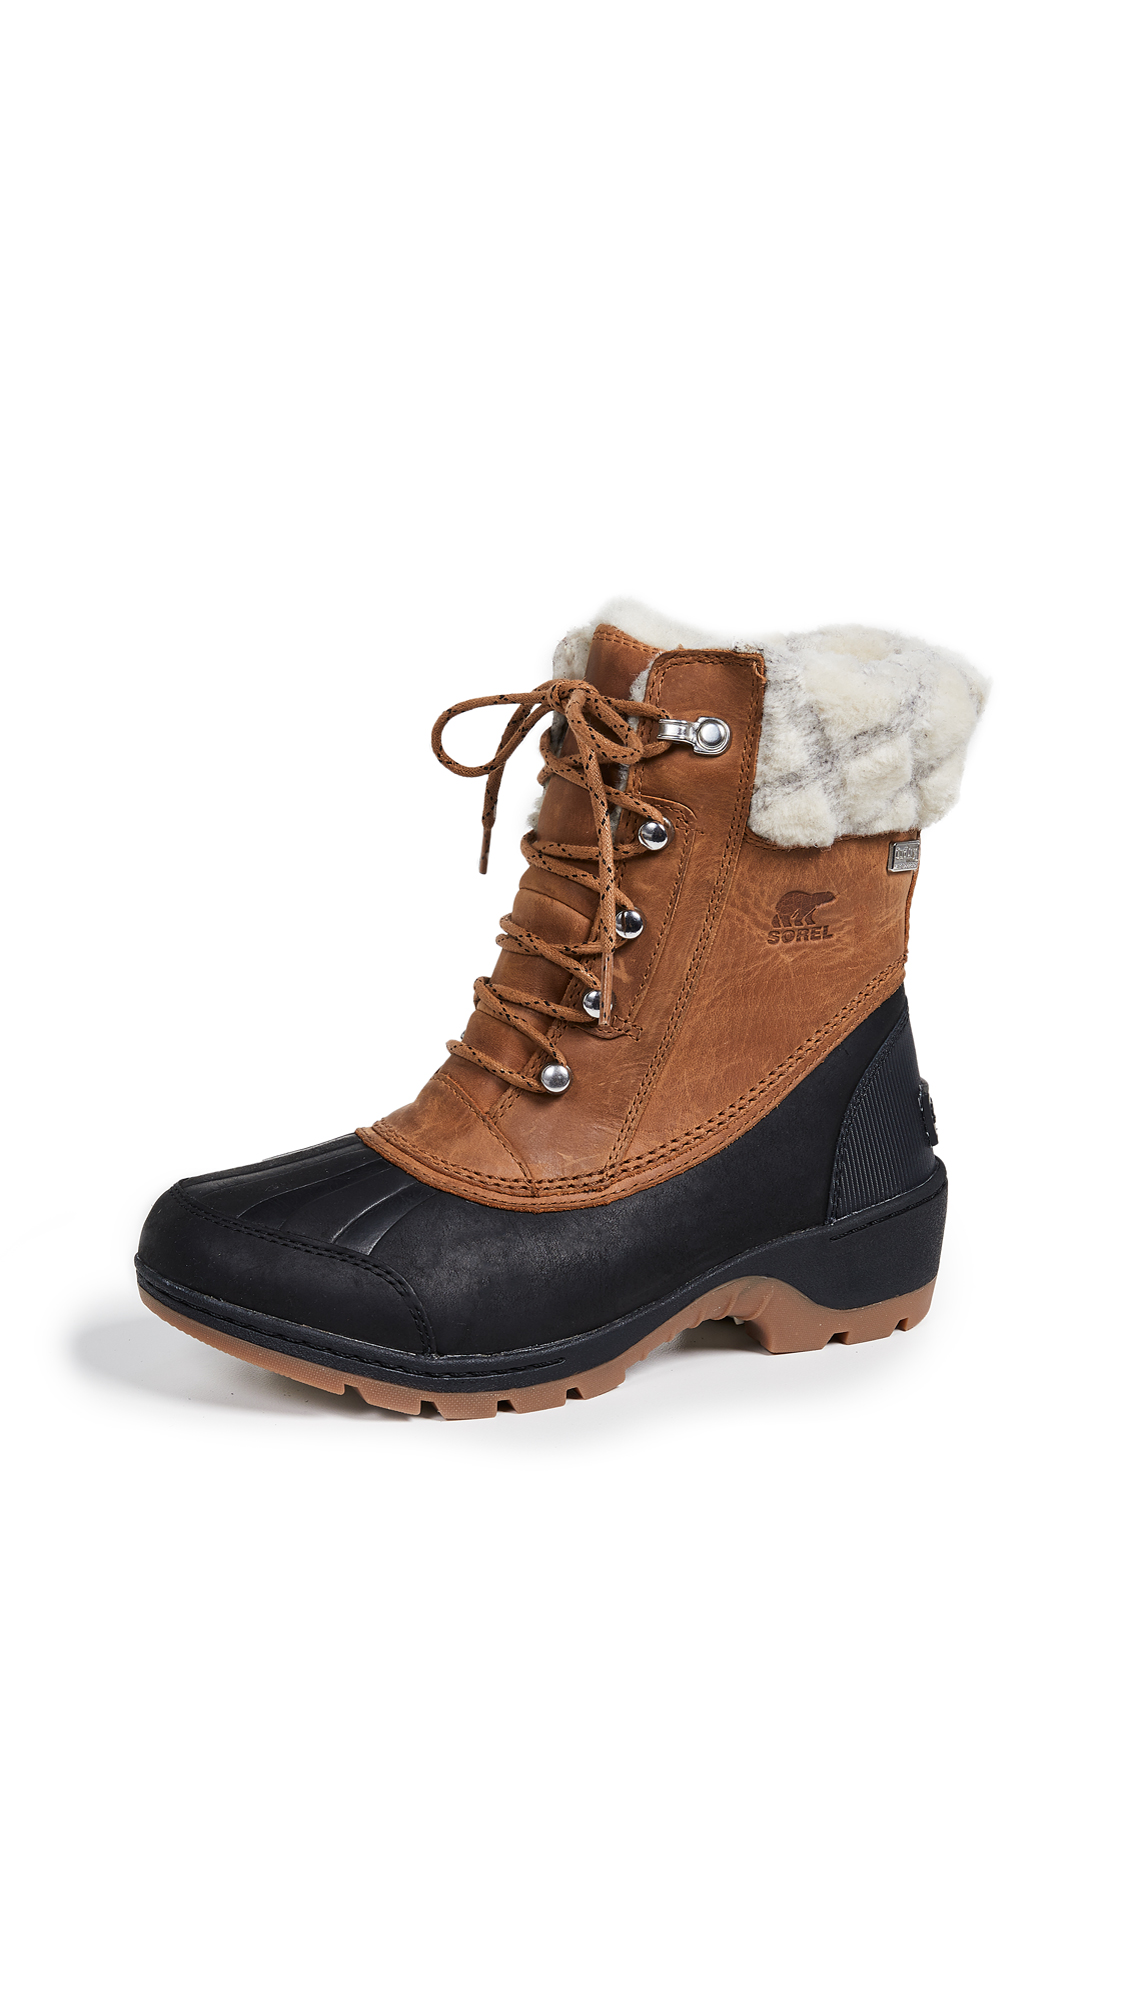 Women'S Whistler Waterproof Cold-Weather Boots in Camel Brown/Black